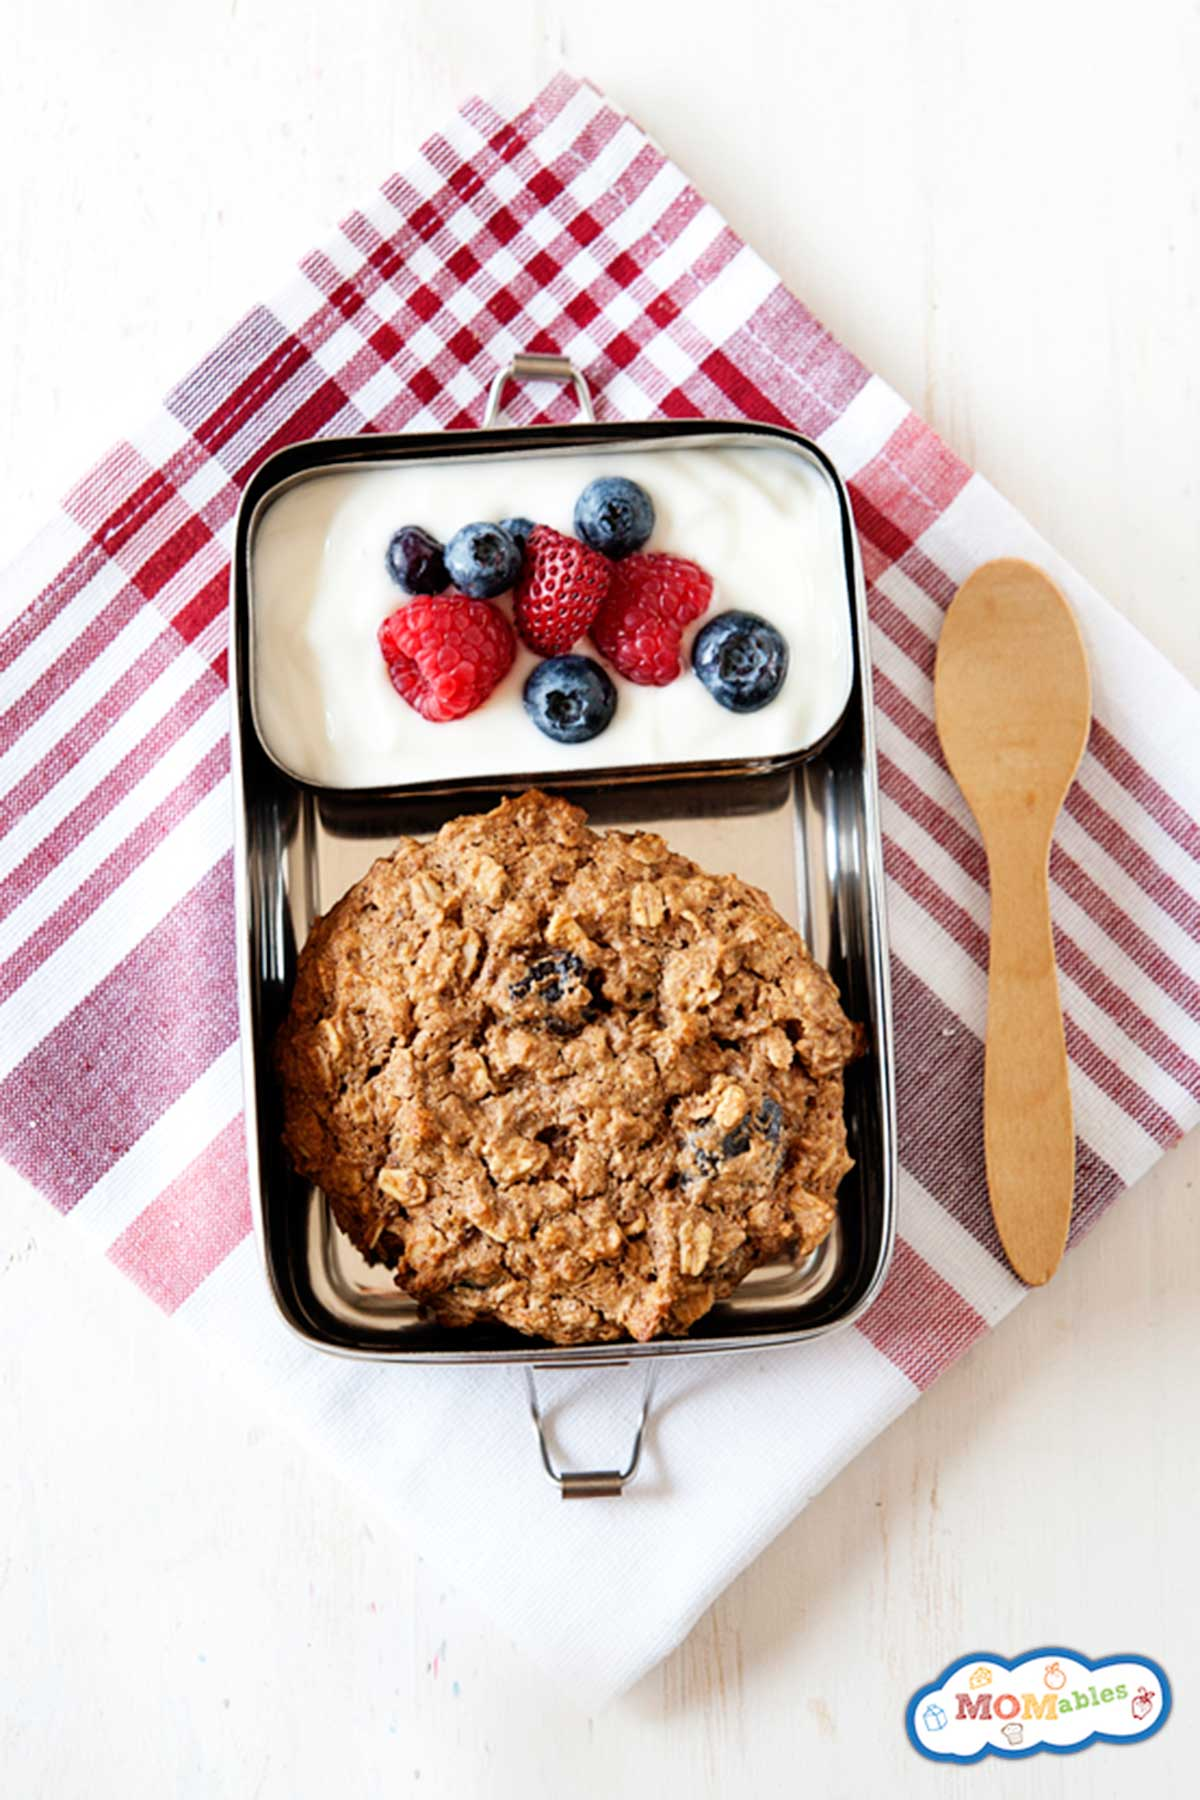 large breakfast cookie packed in lunch container with yogurt